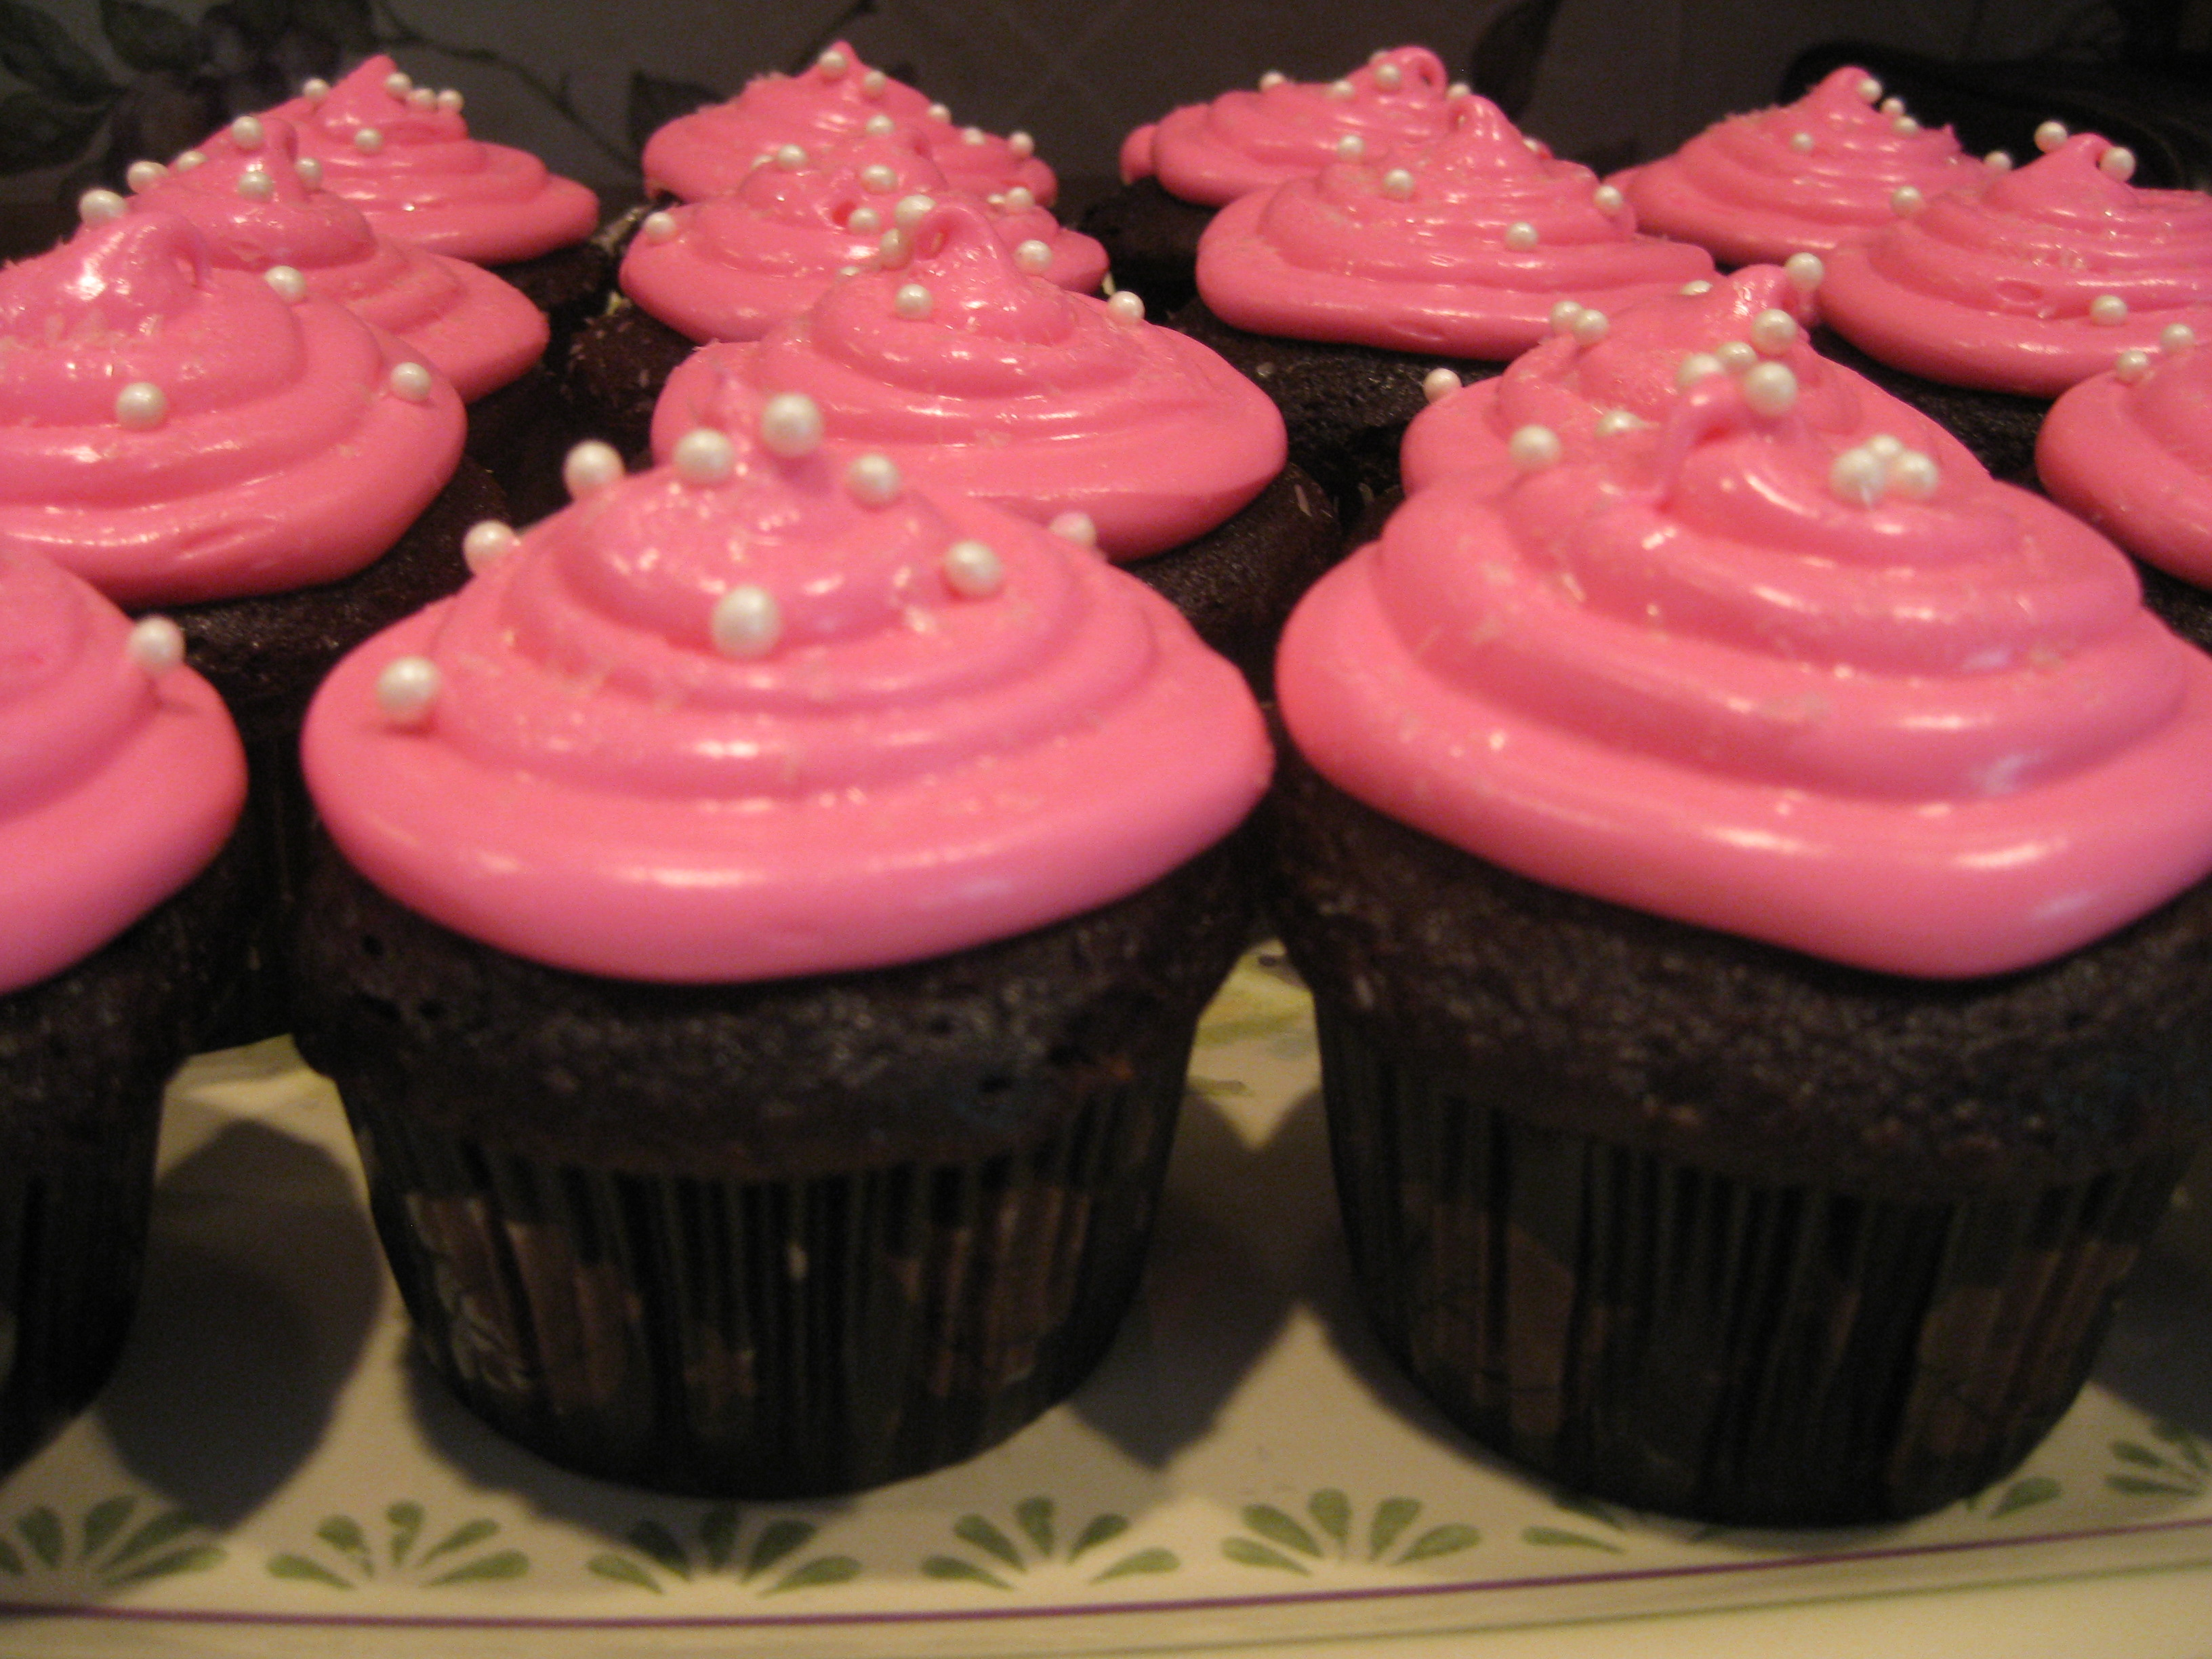 Pink Cupcake with Chocolate Frosting